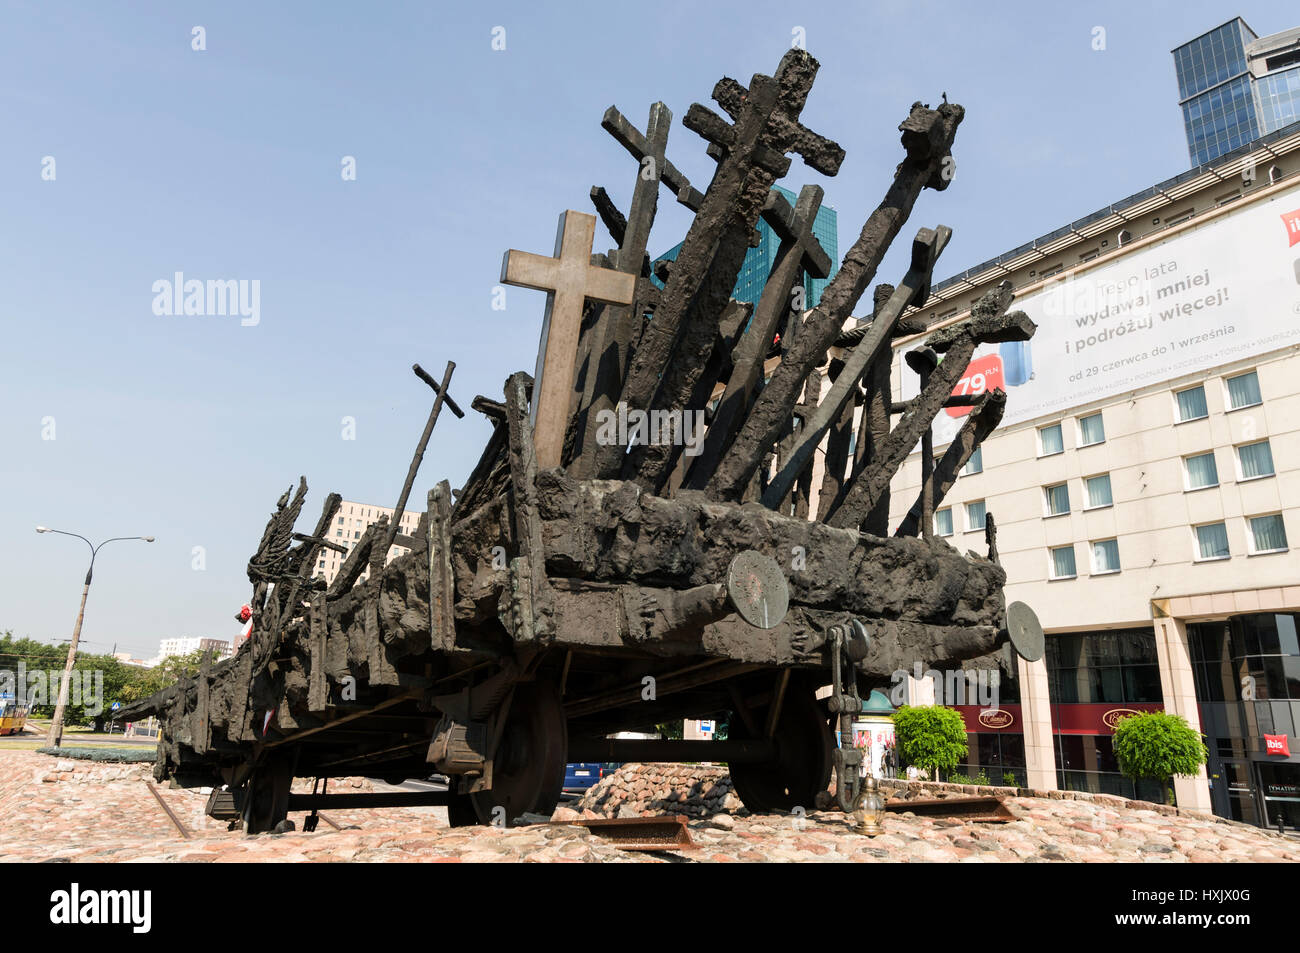 the bronze cast monument of a rail truck full of crosses